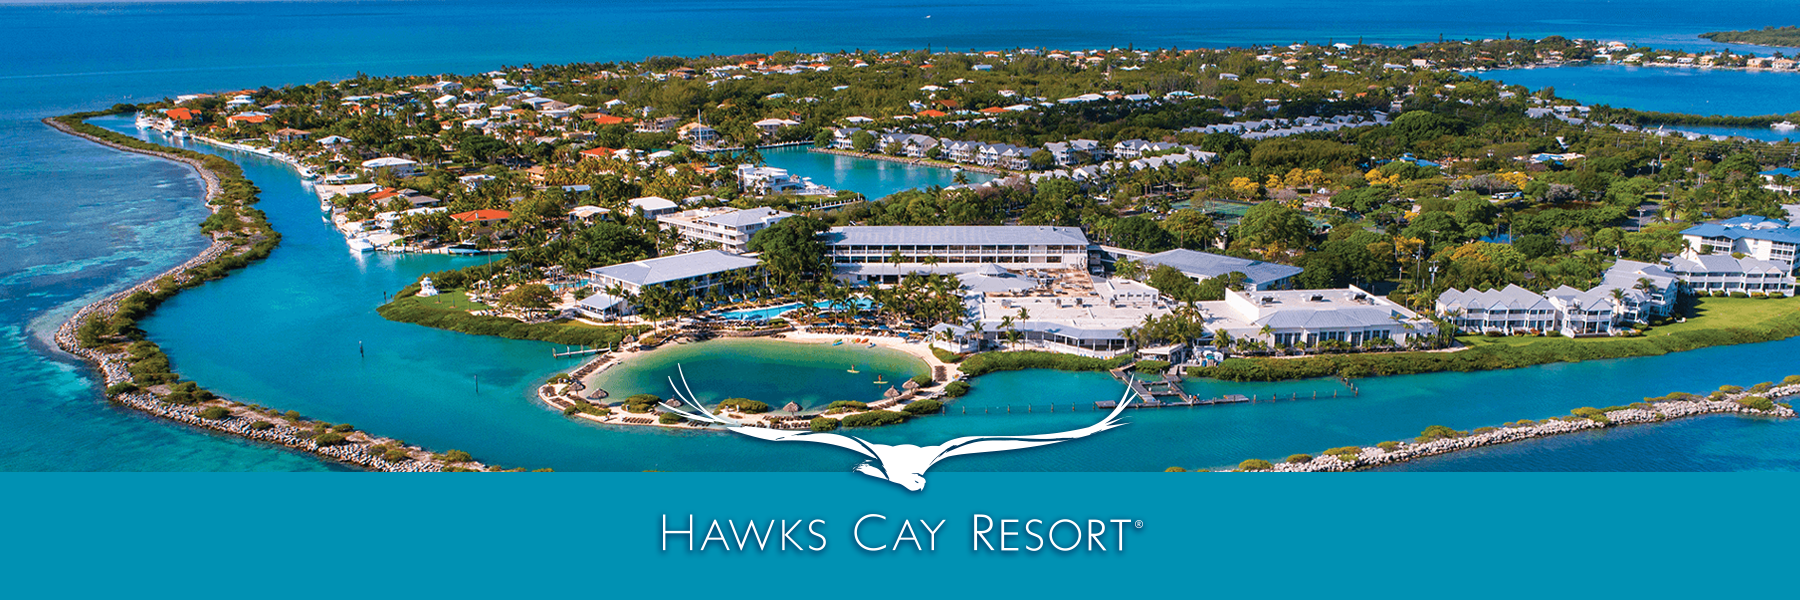 Huk Ultimate Fishing Experience Giveaway. 3 nights Hawks Cay Resort. Image of Hawks Cay Resort